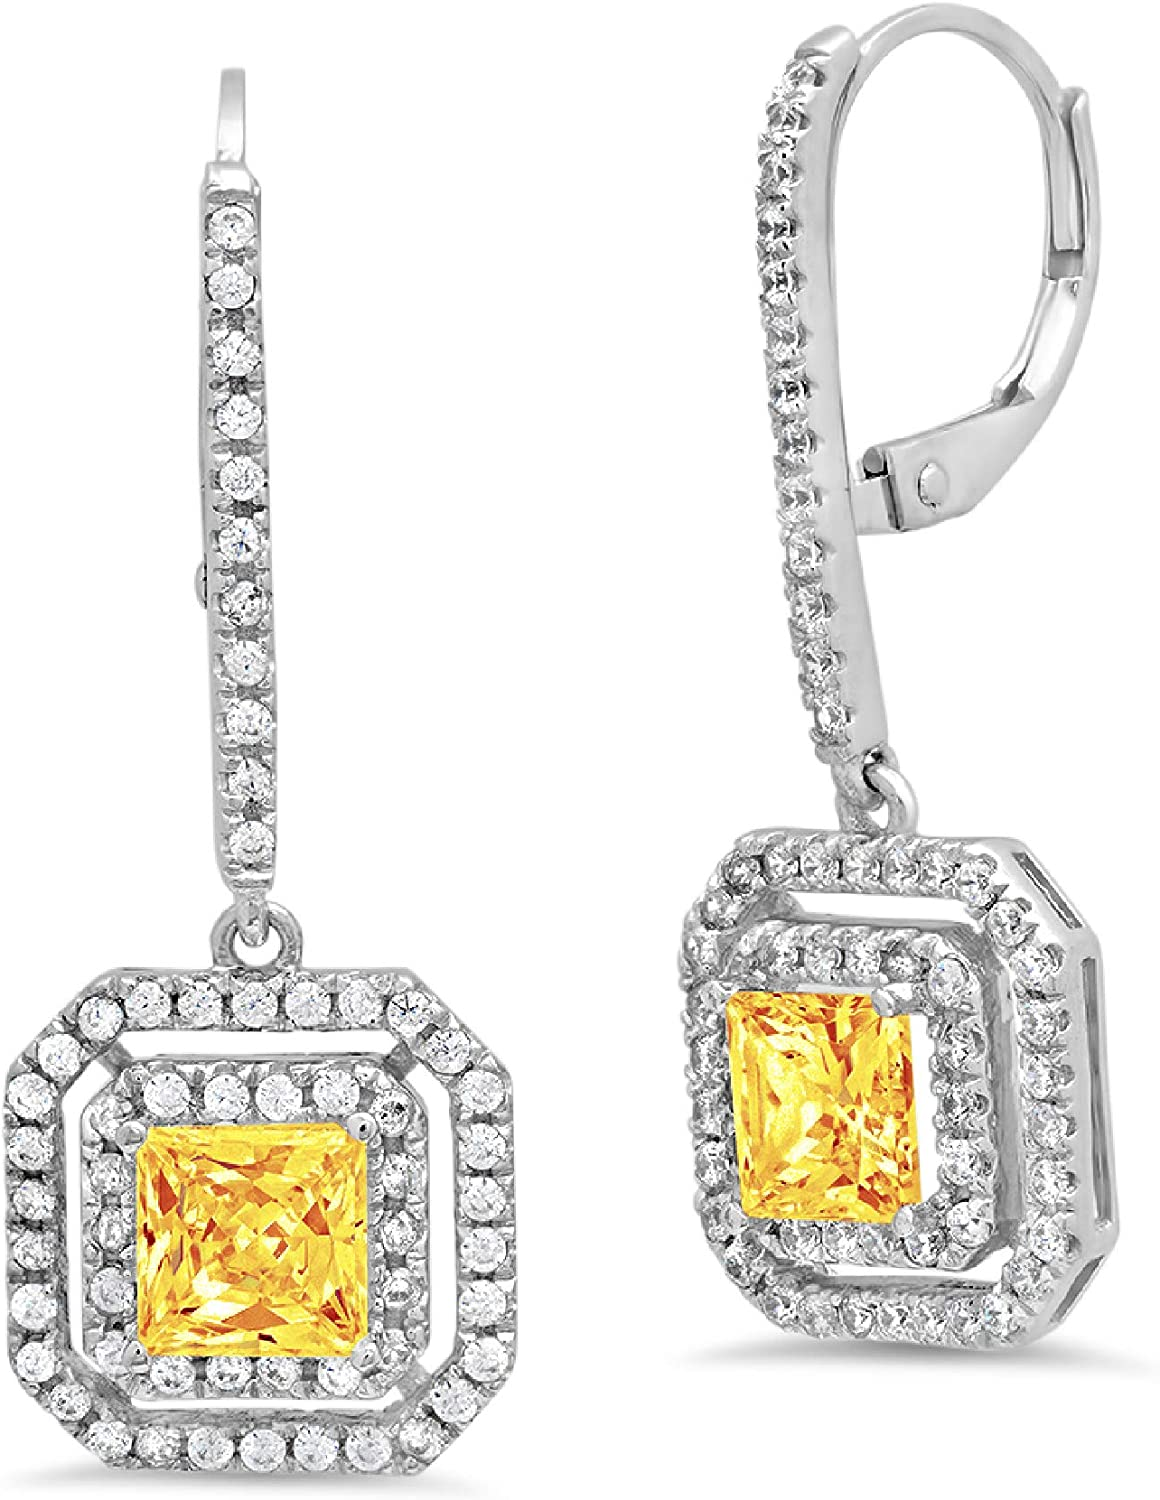 3.17CT Princess Round Cut Double Halo Solitaire Natural Yellow Citrine VVS1 gemstone Unisex Designer Lever back Drop Dangle Earrings Solid 14k White Gold